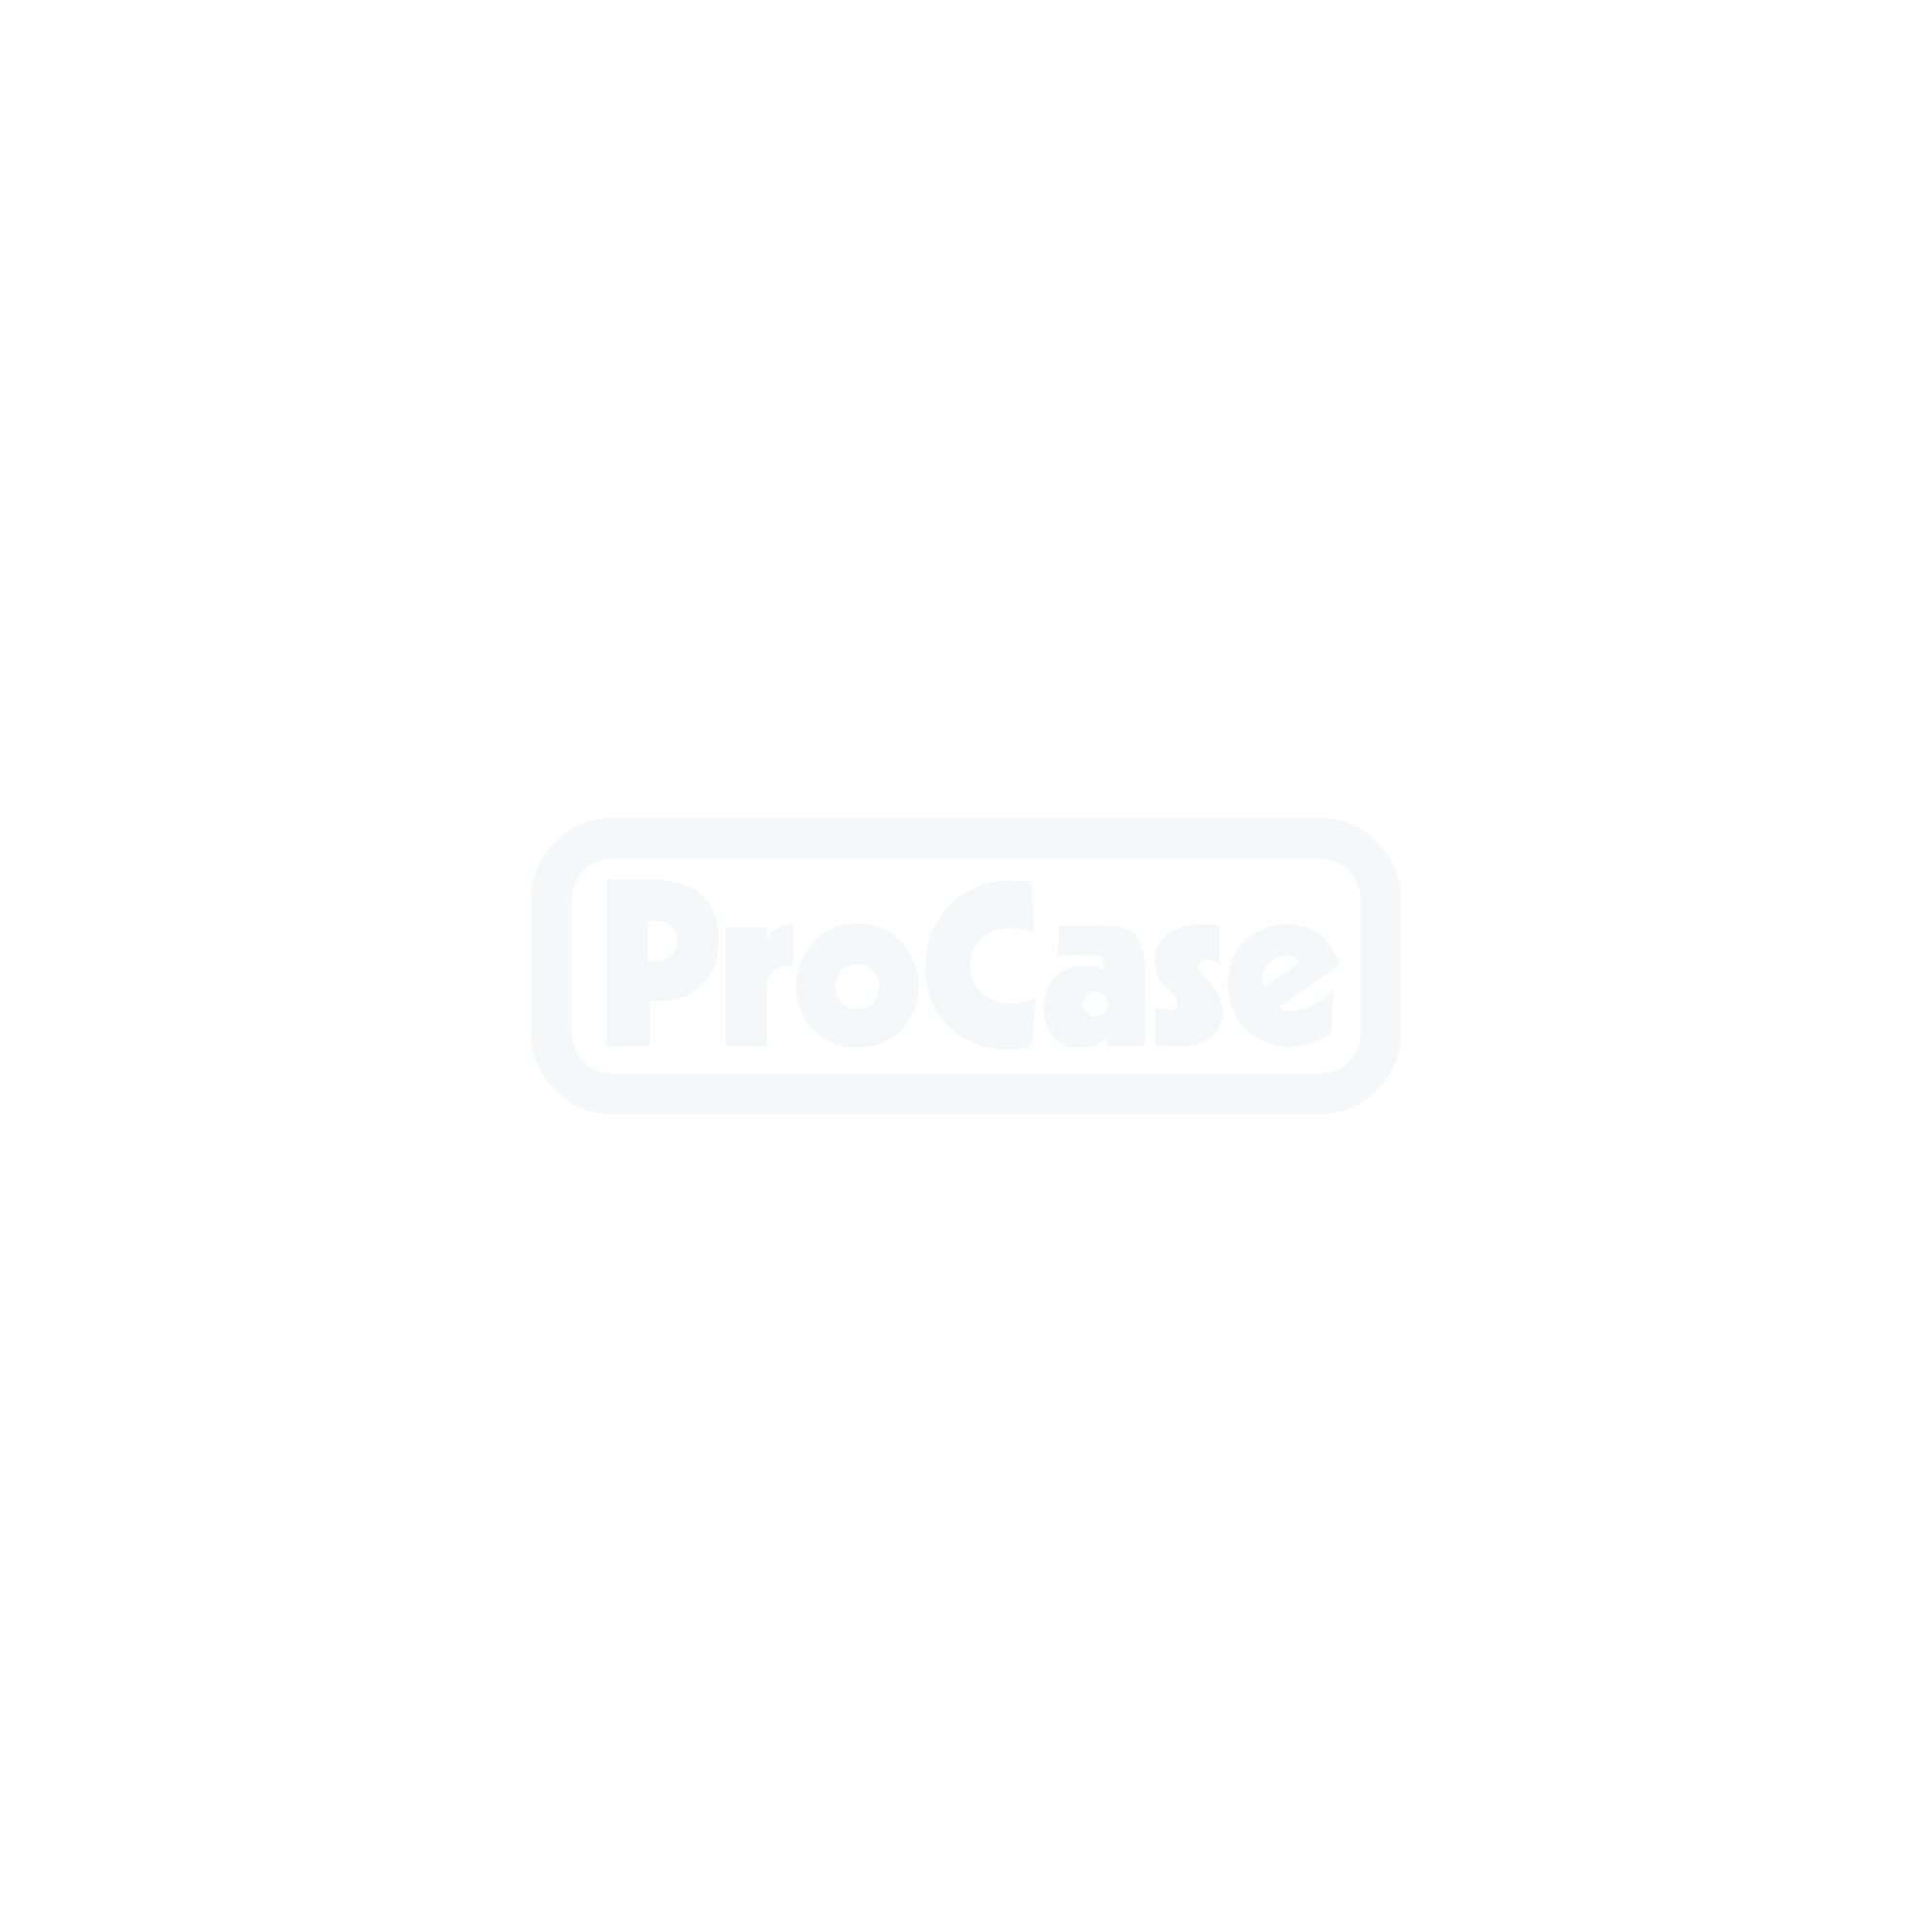 Flightcase Truhe für 4 JB Lighting A8 2